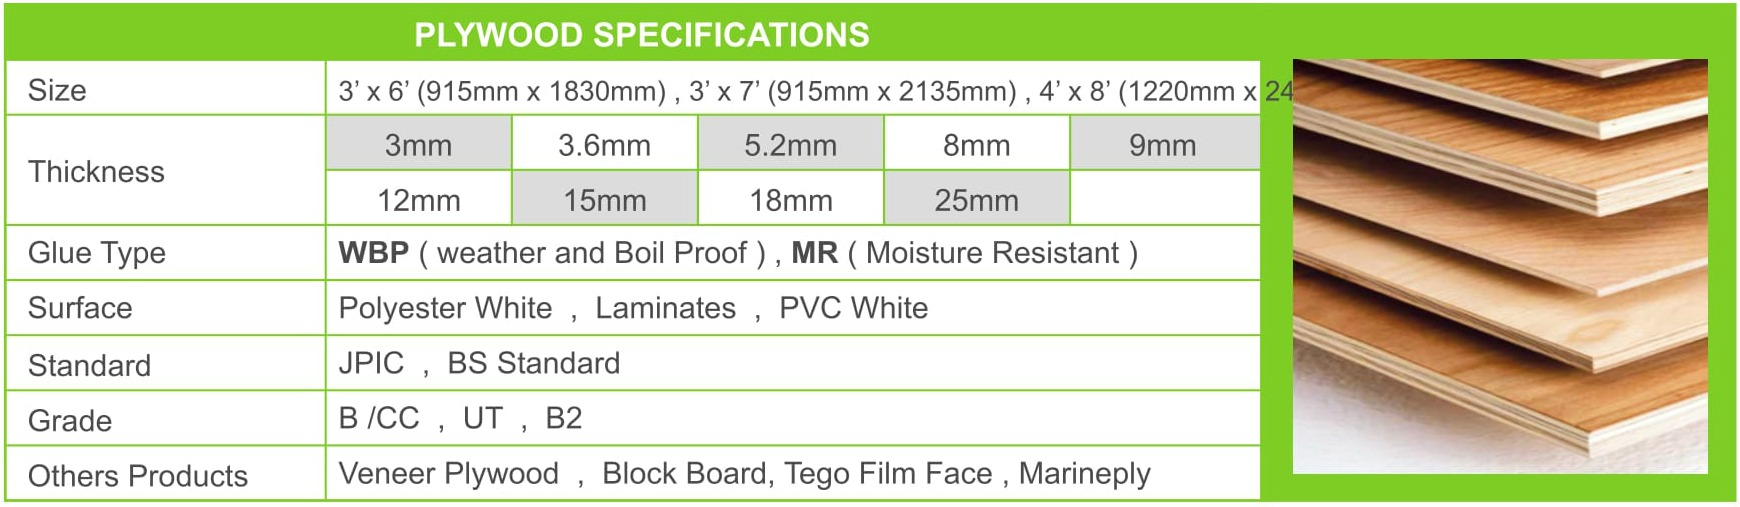 plywood specifications